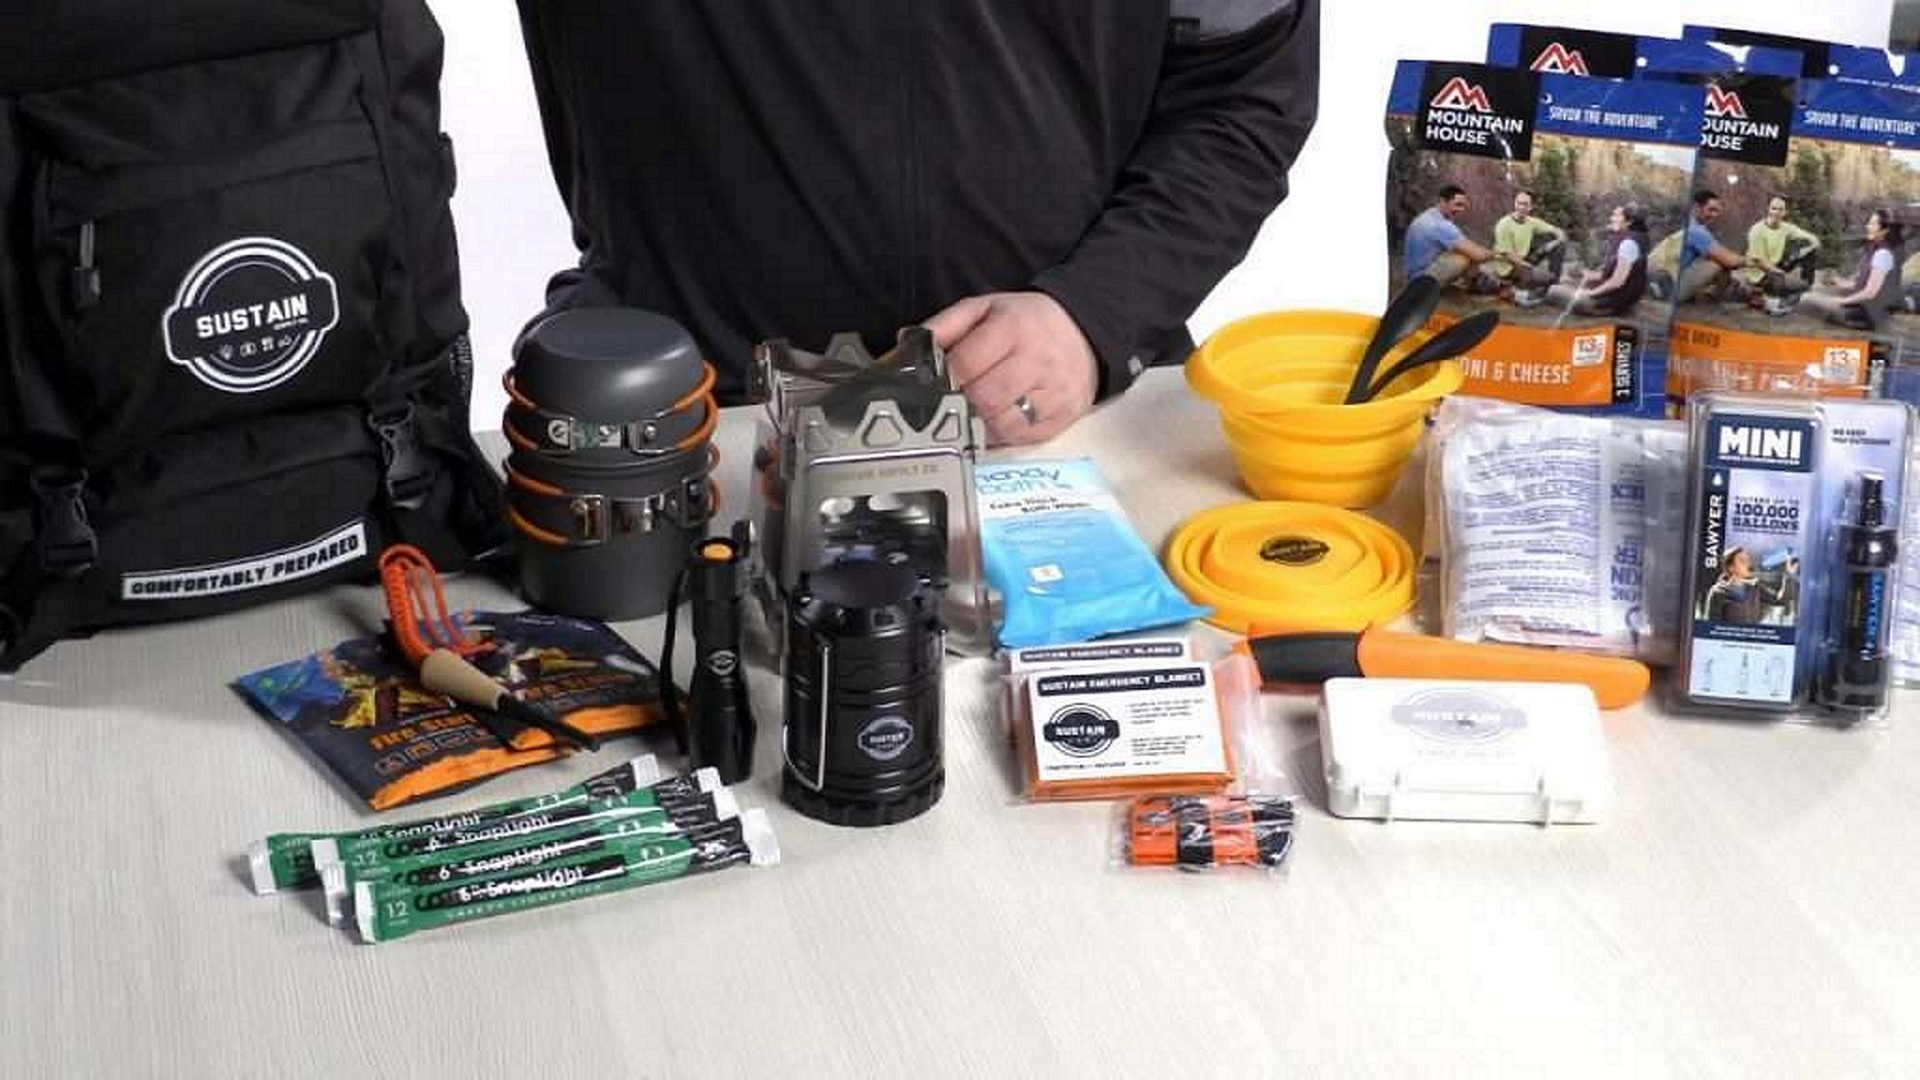 Sustain Supply Co. ESSENTIAL 2 Two Person 72 hours Emergency Survival Kit